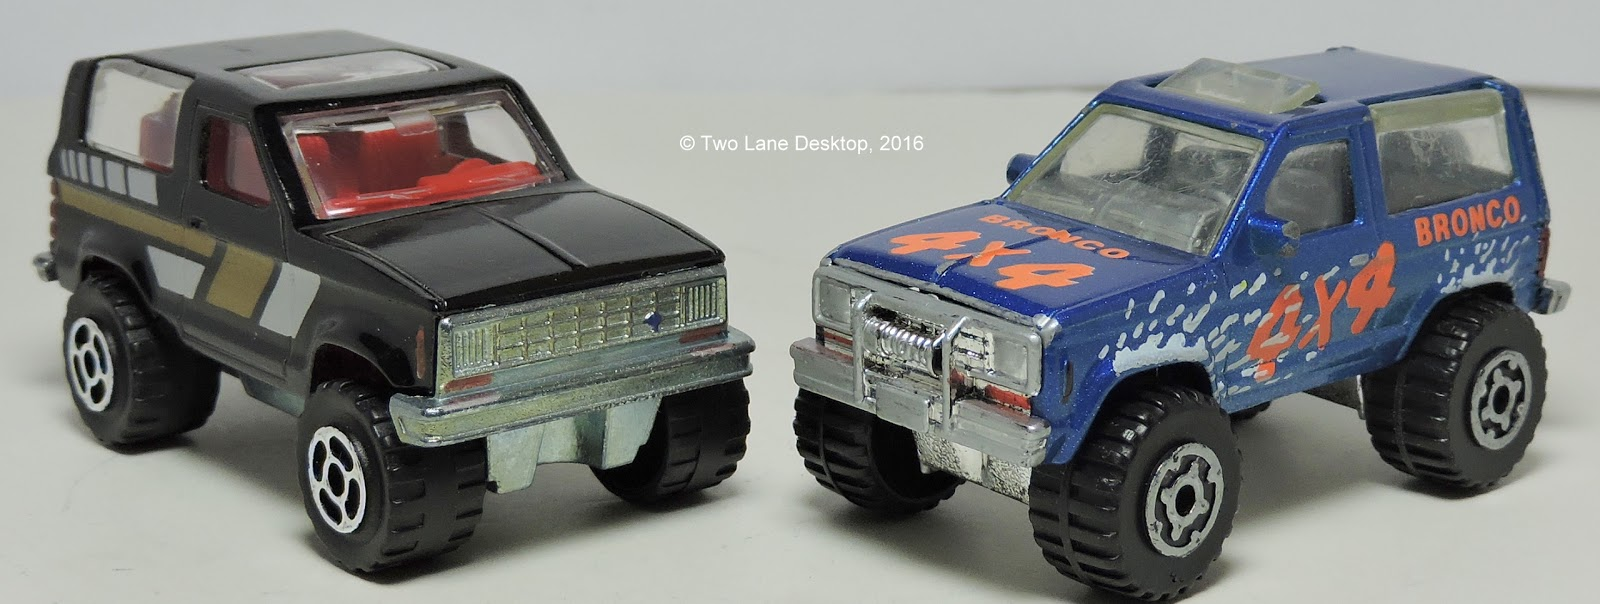 Majorette And Matchbox Ford Bronco Ii Two Lane Desktop 1980 Lifted I Recently Got Different Broncos From The 1980s One Is Full Size Now Based On F 150 Platform While Other Smaller